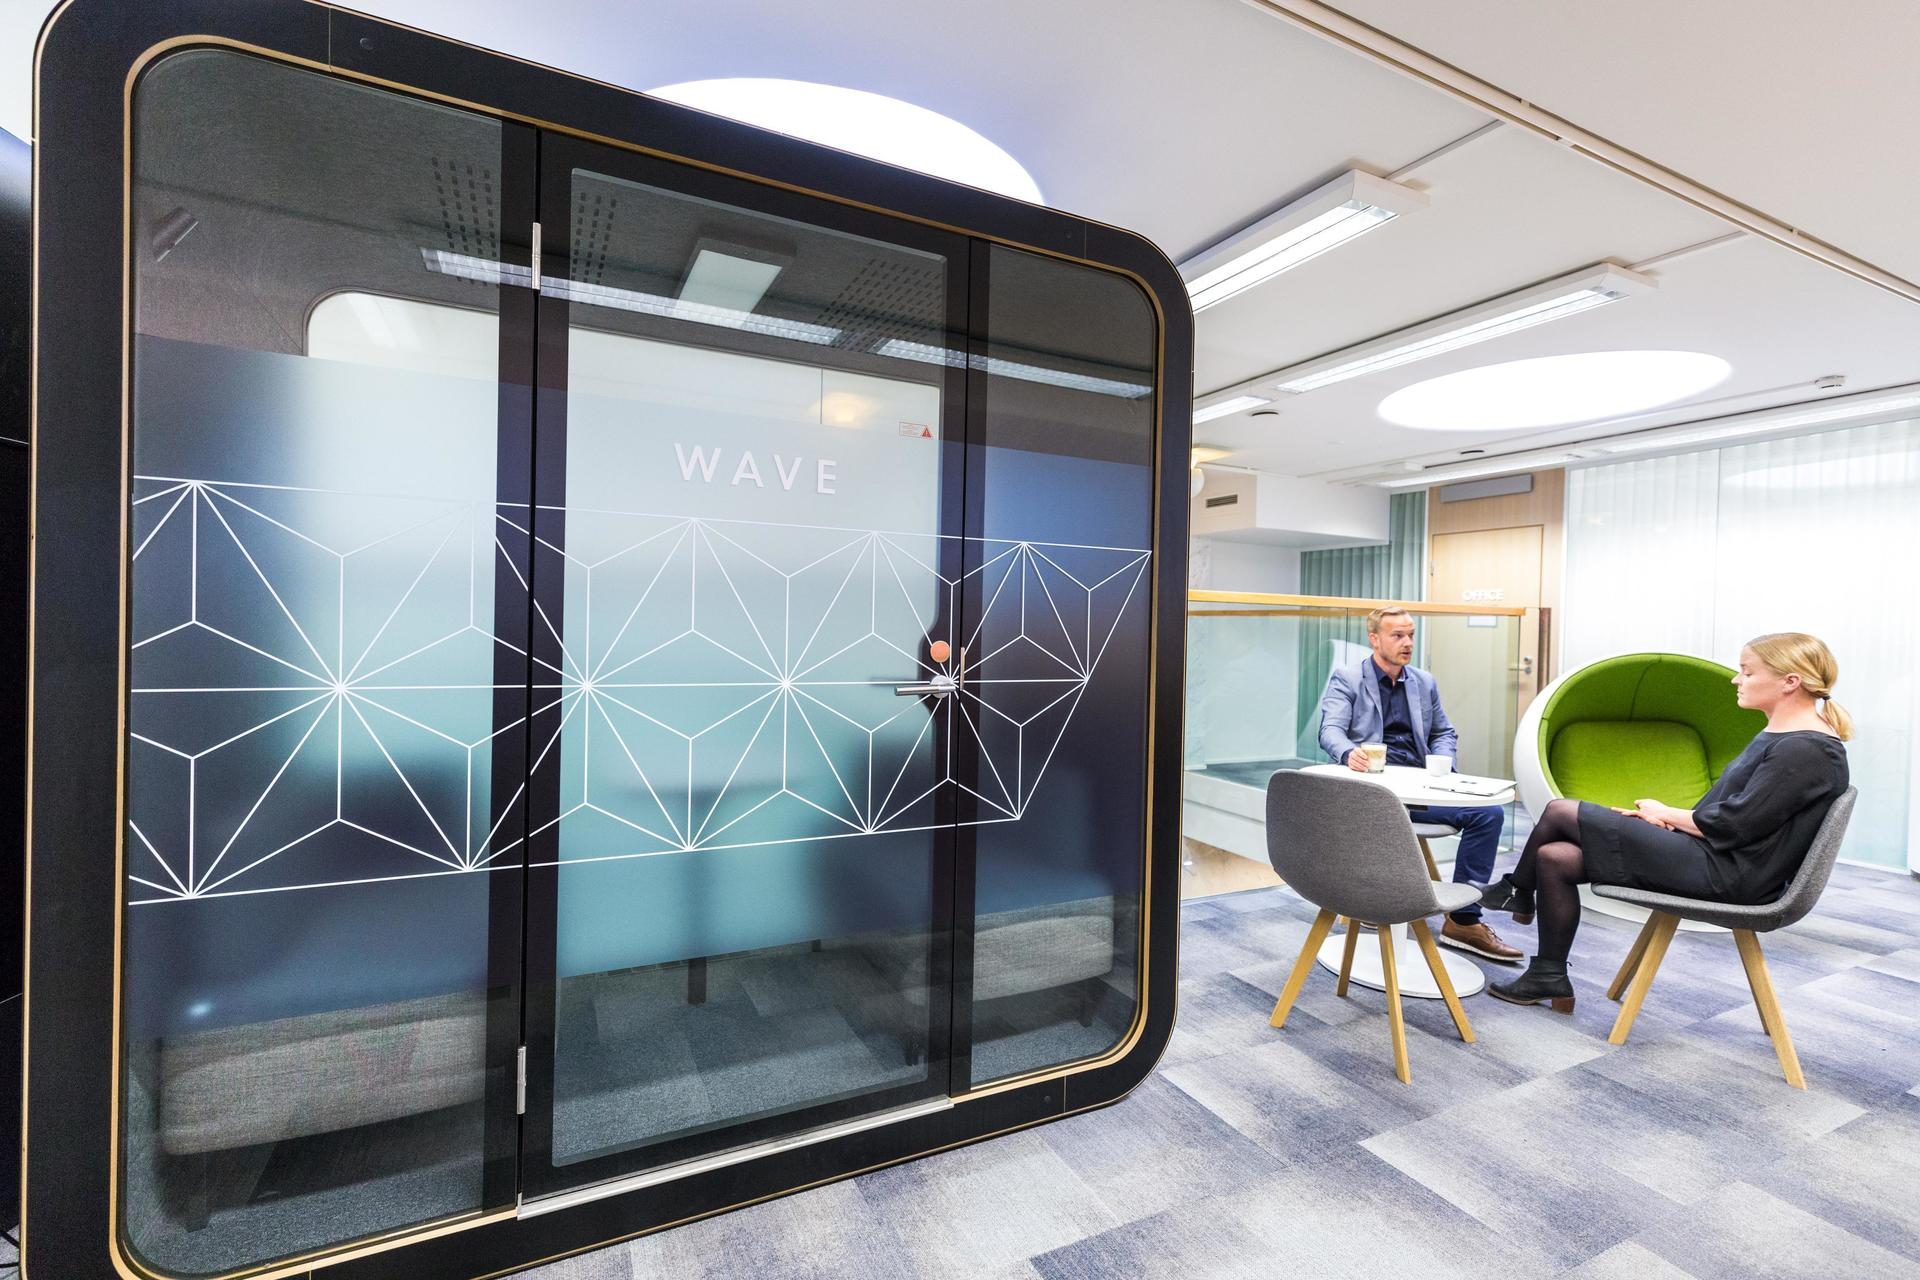 Framery Q is a perfect place for people to have meetings, brainstorming sessions and important one-on-one conversations in private without disturbing the whole office – or the office disturbing you.